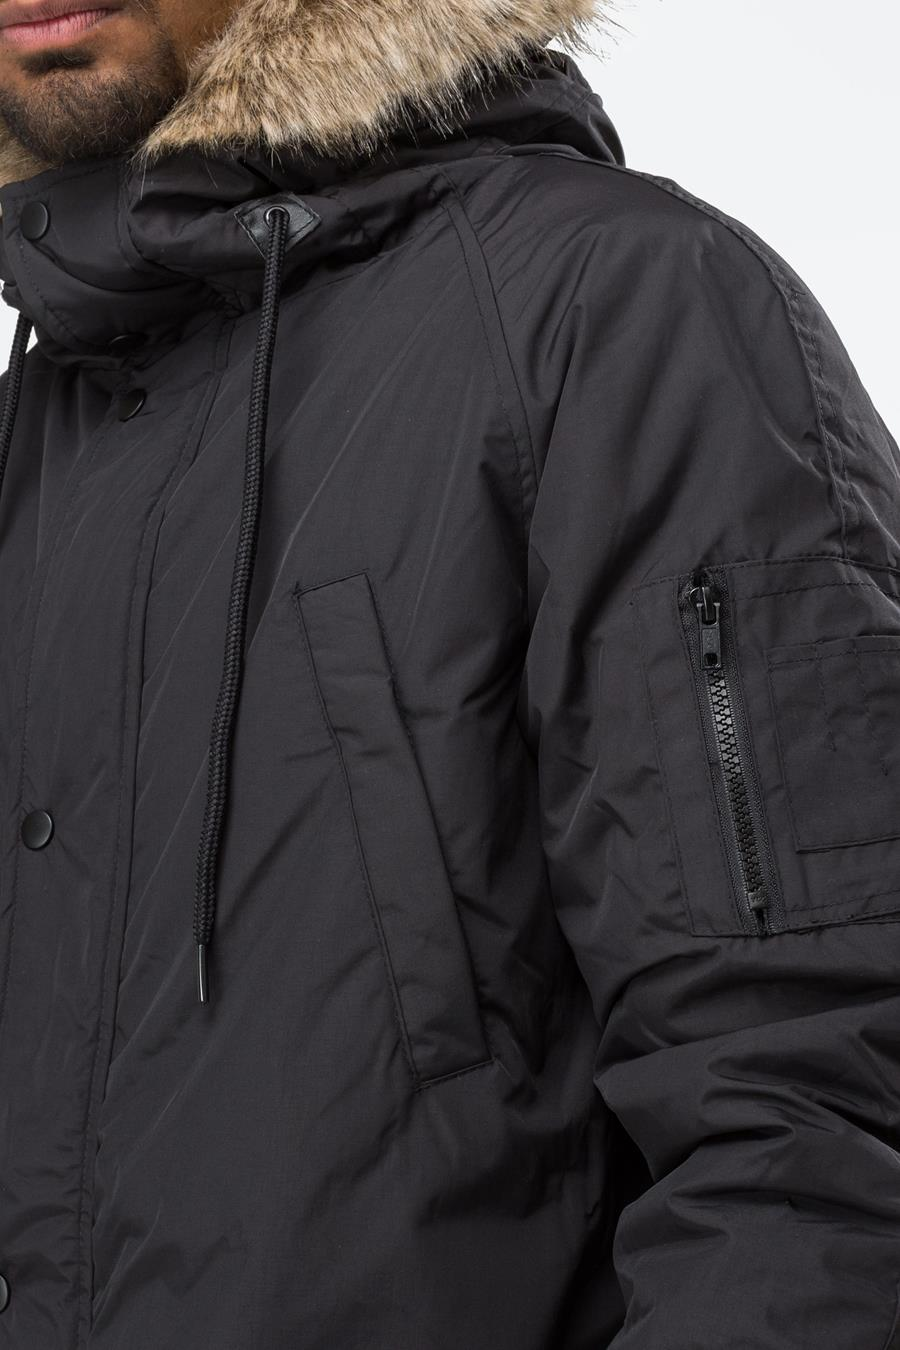 release date 100% high quality fashion HYPE BLACK TRACK MASTER MENS PARKA JACKET   Justhype ltd